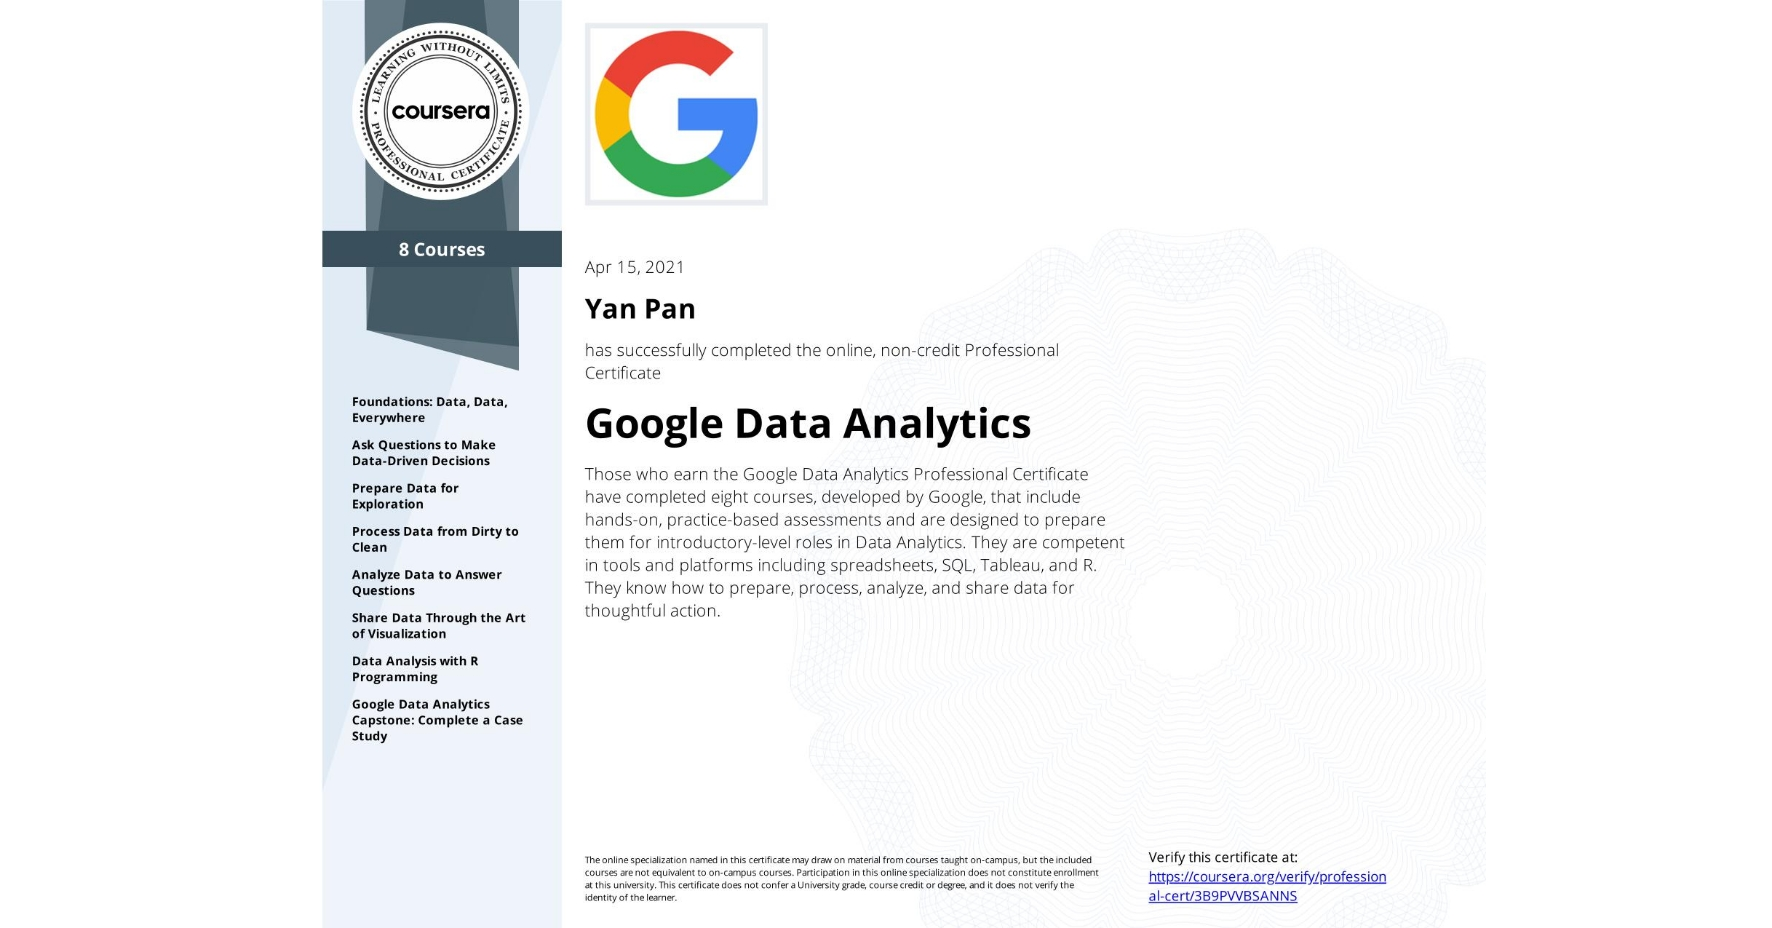 View certificate for Yan Pan, Google Data Analytics, offered through Coursera. Those who earn the Google Data Analytics Professional Certificate have completed eight courses, developed by Google, that include hands-on, practice-based assessments and are designed to prepare them for introductory-level roles in Data Analytics. They are competent in tools and platforms including spreadsheets, SQL, Tableau, and R. They know how to prepare, process, analyze, and share data for thoughtful action.